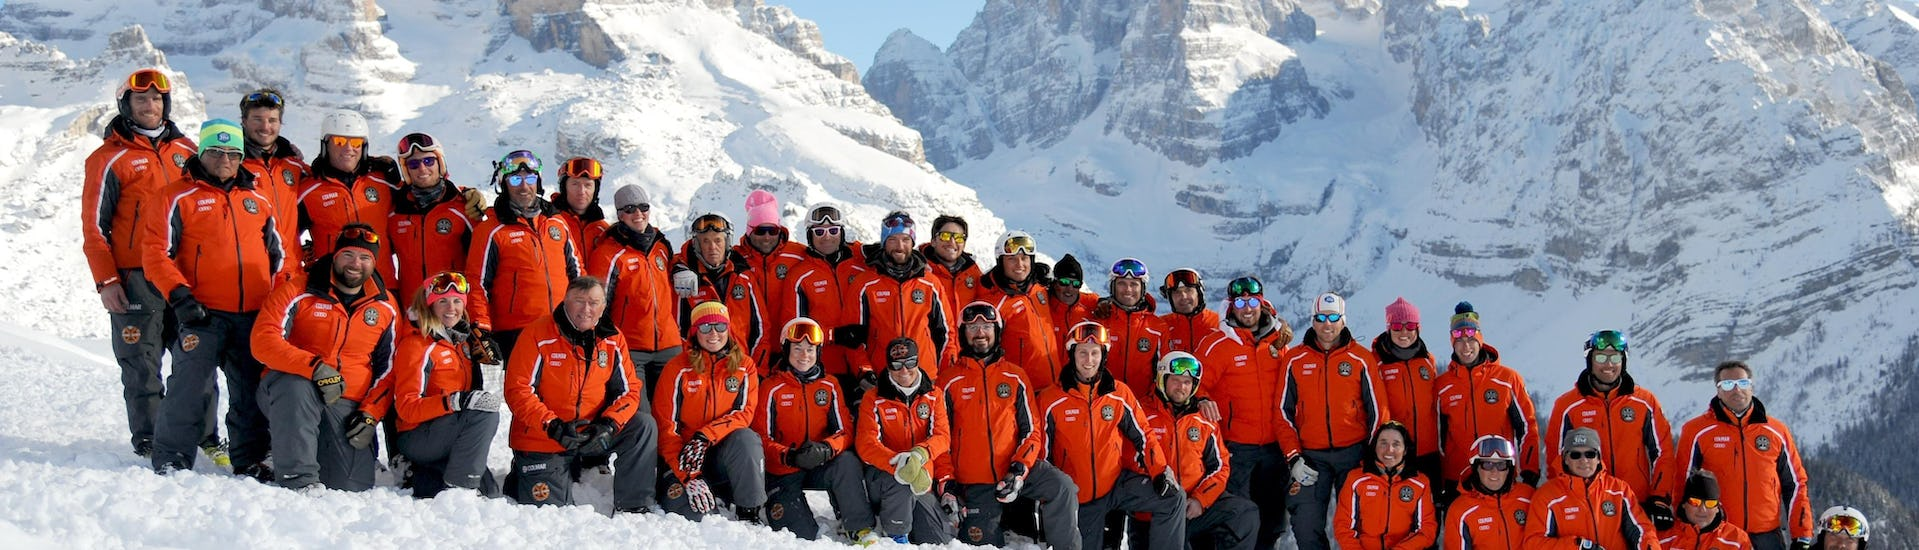 A group of skiers on the slopes of Madonna di Campiglio